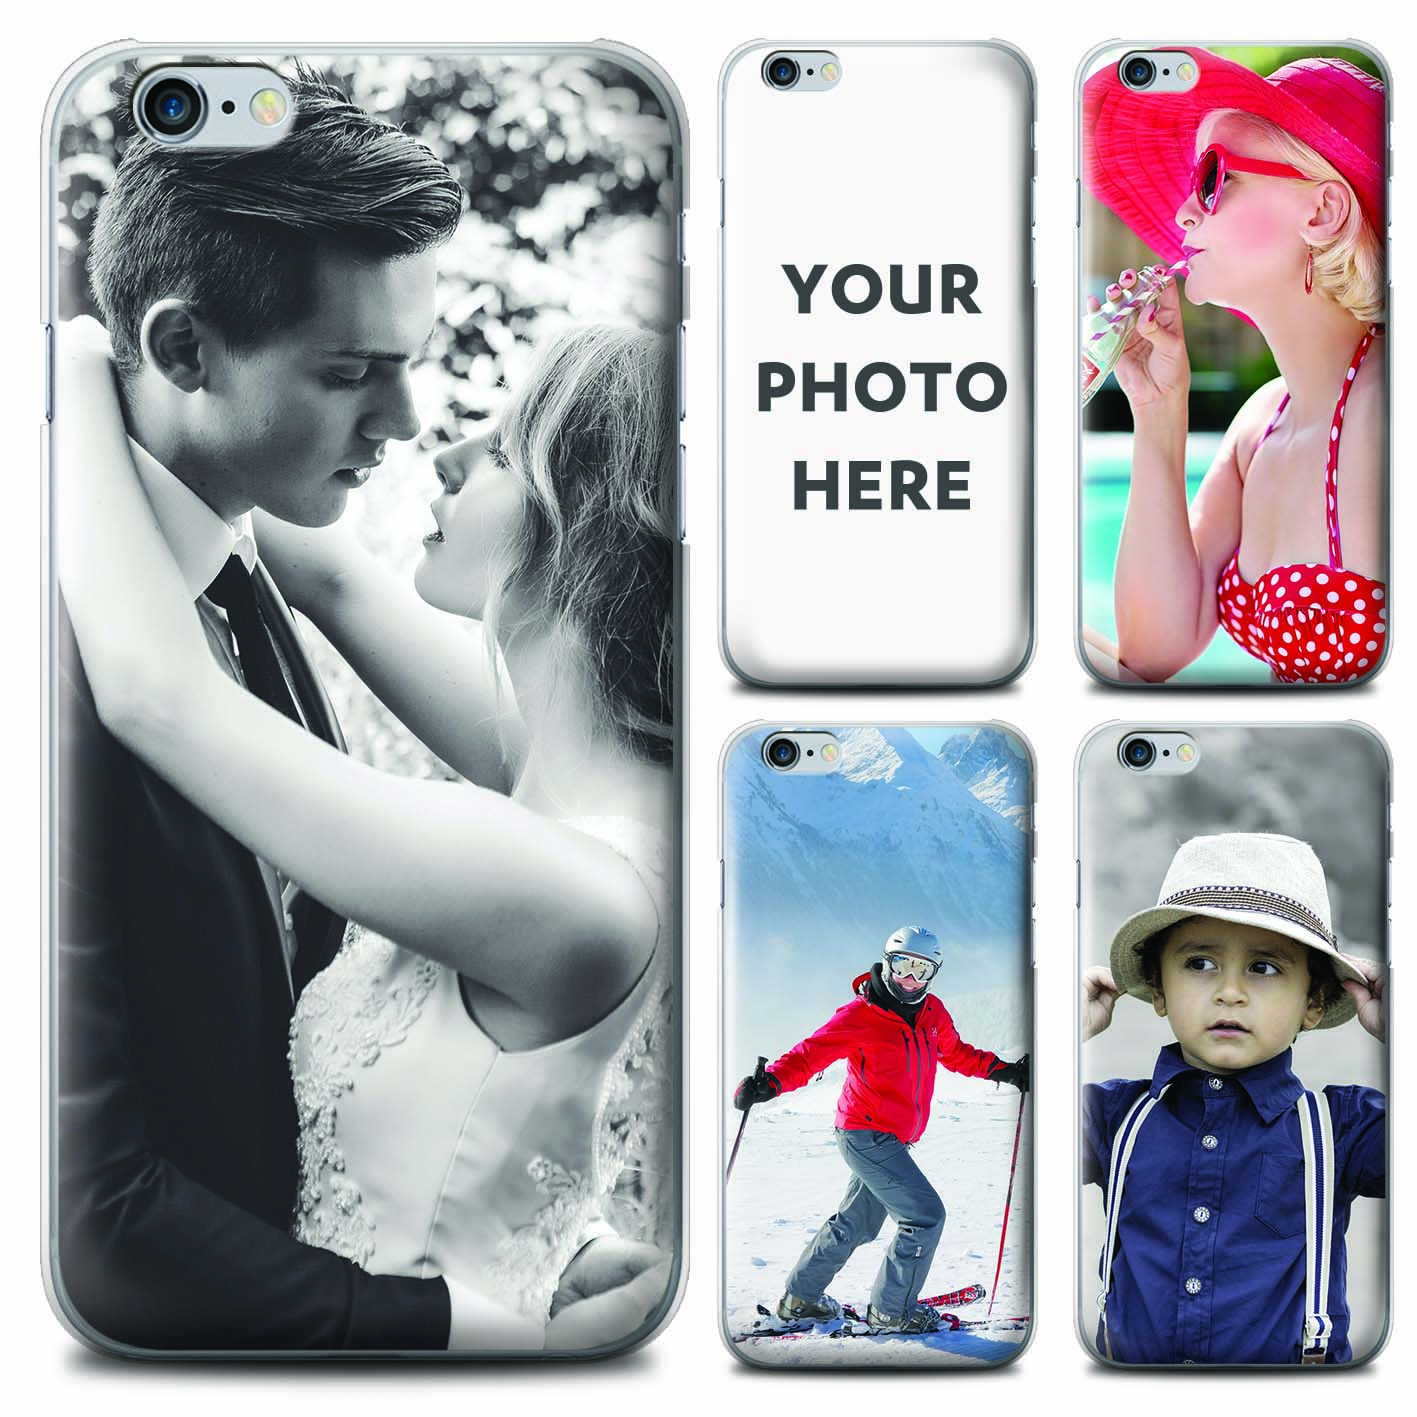 Details About Personalized Custom Photo Phone Case For Apple Iphone Image Collage Gel Cover